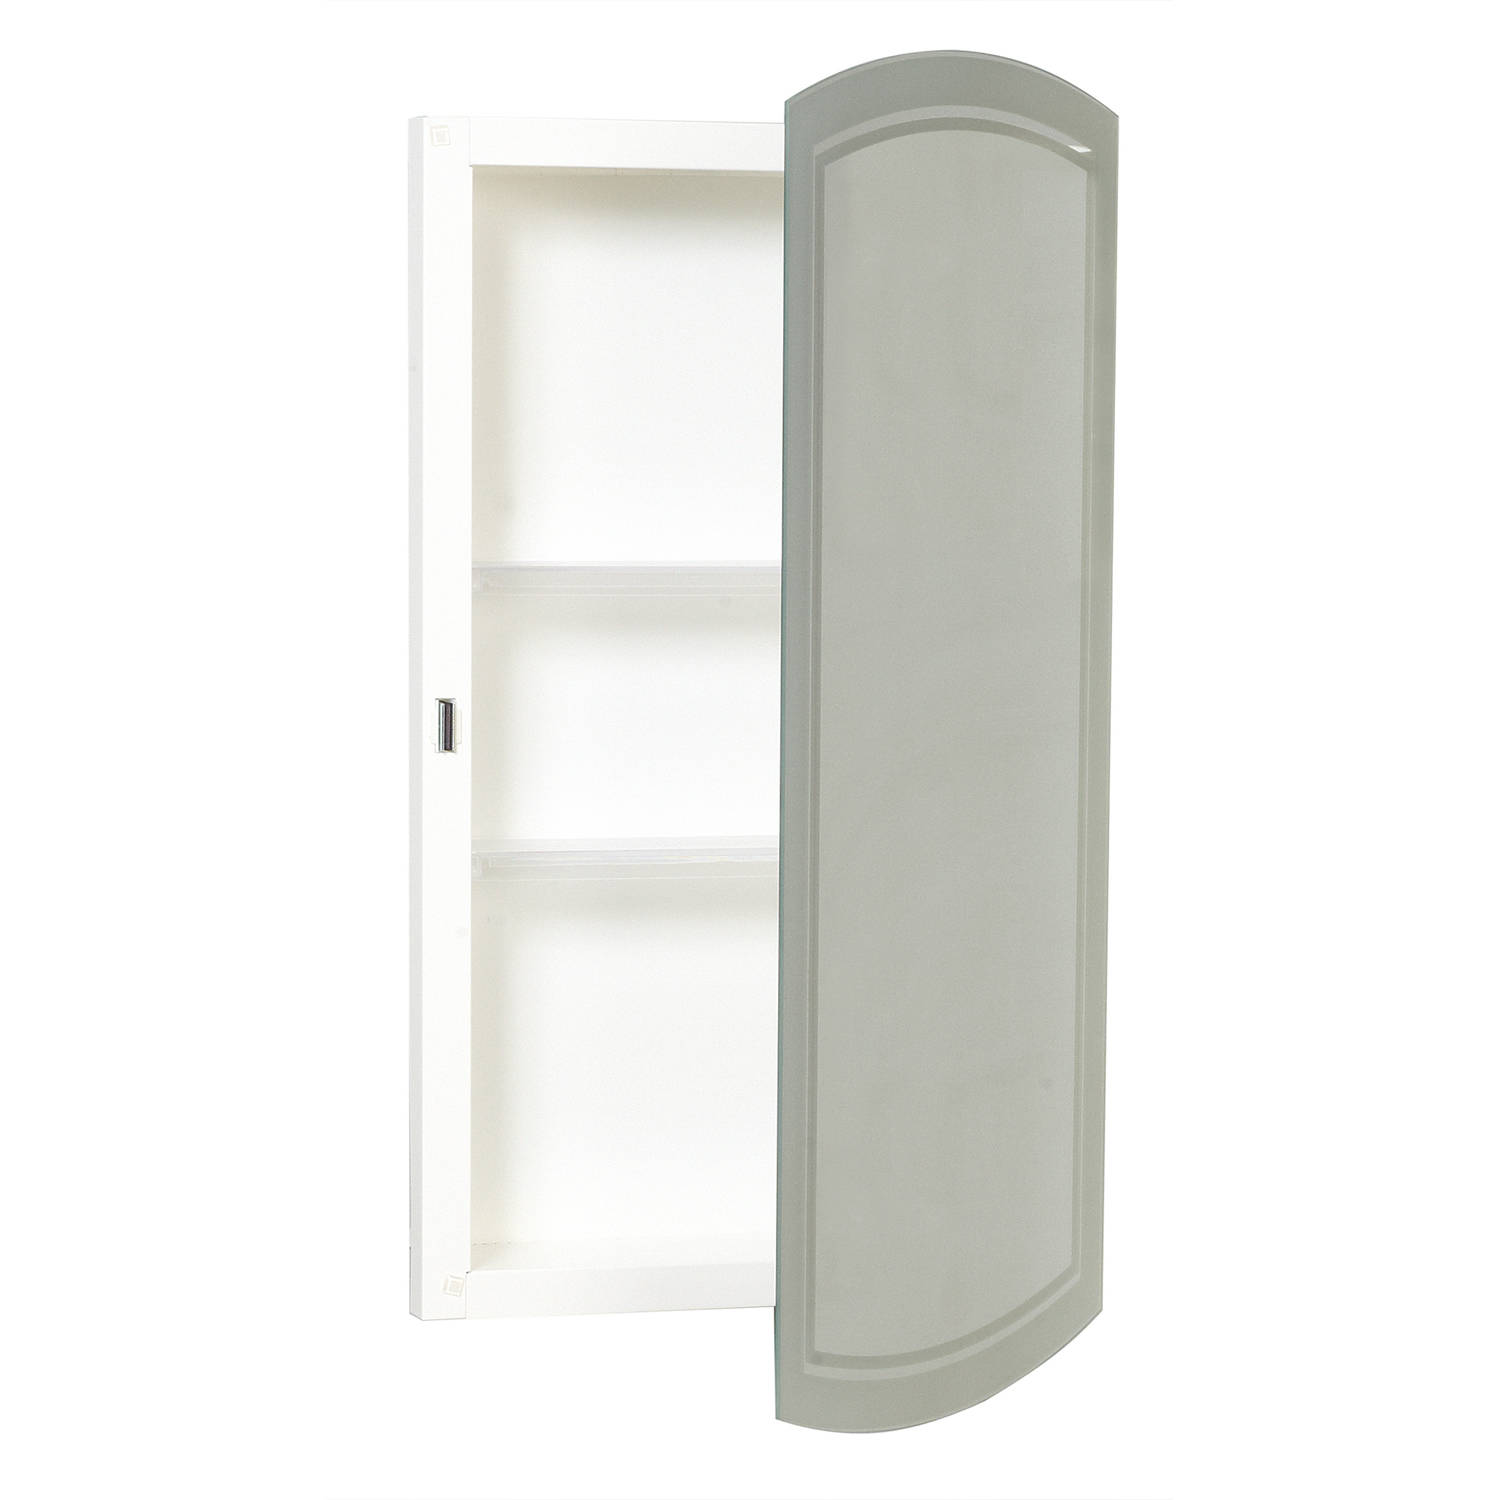 "Zenith MM1029 16"" x 28.25"" x 4.5"" White Frameless Medicine Cabinet by Zenith Products"